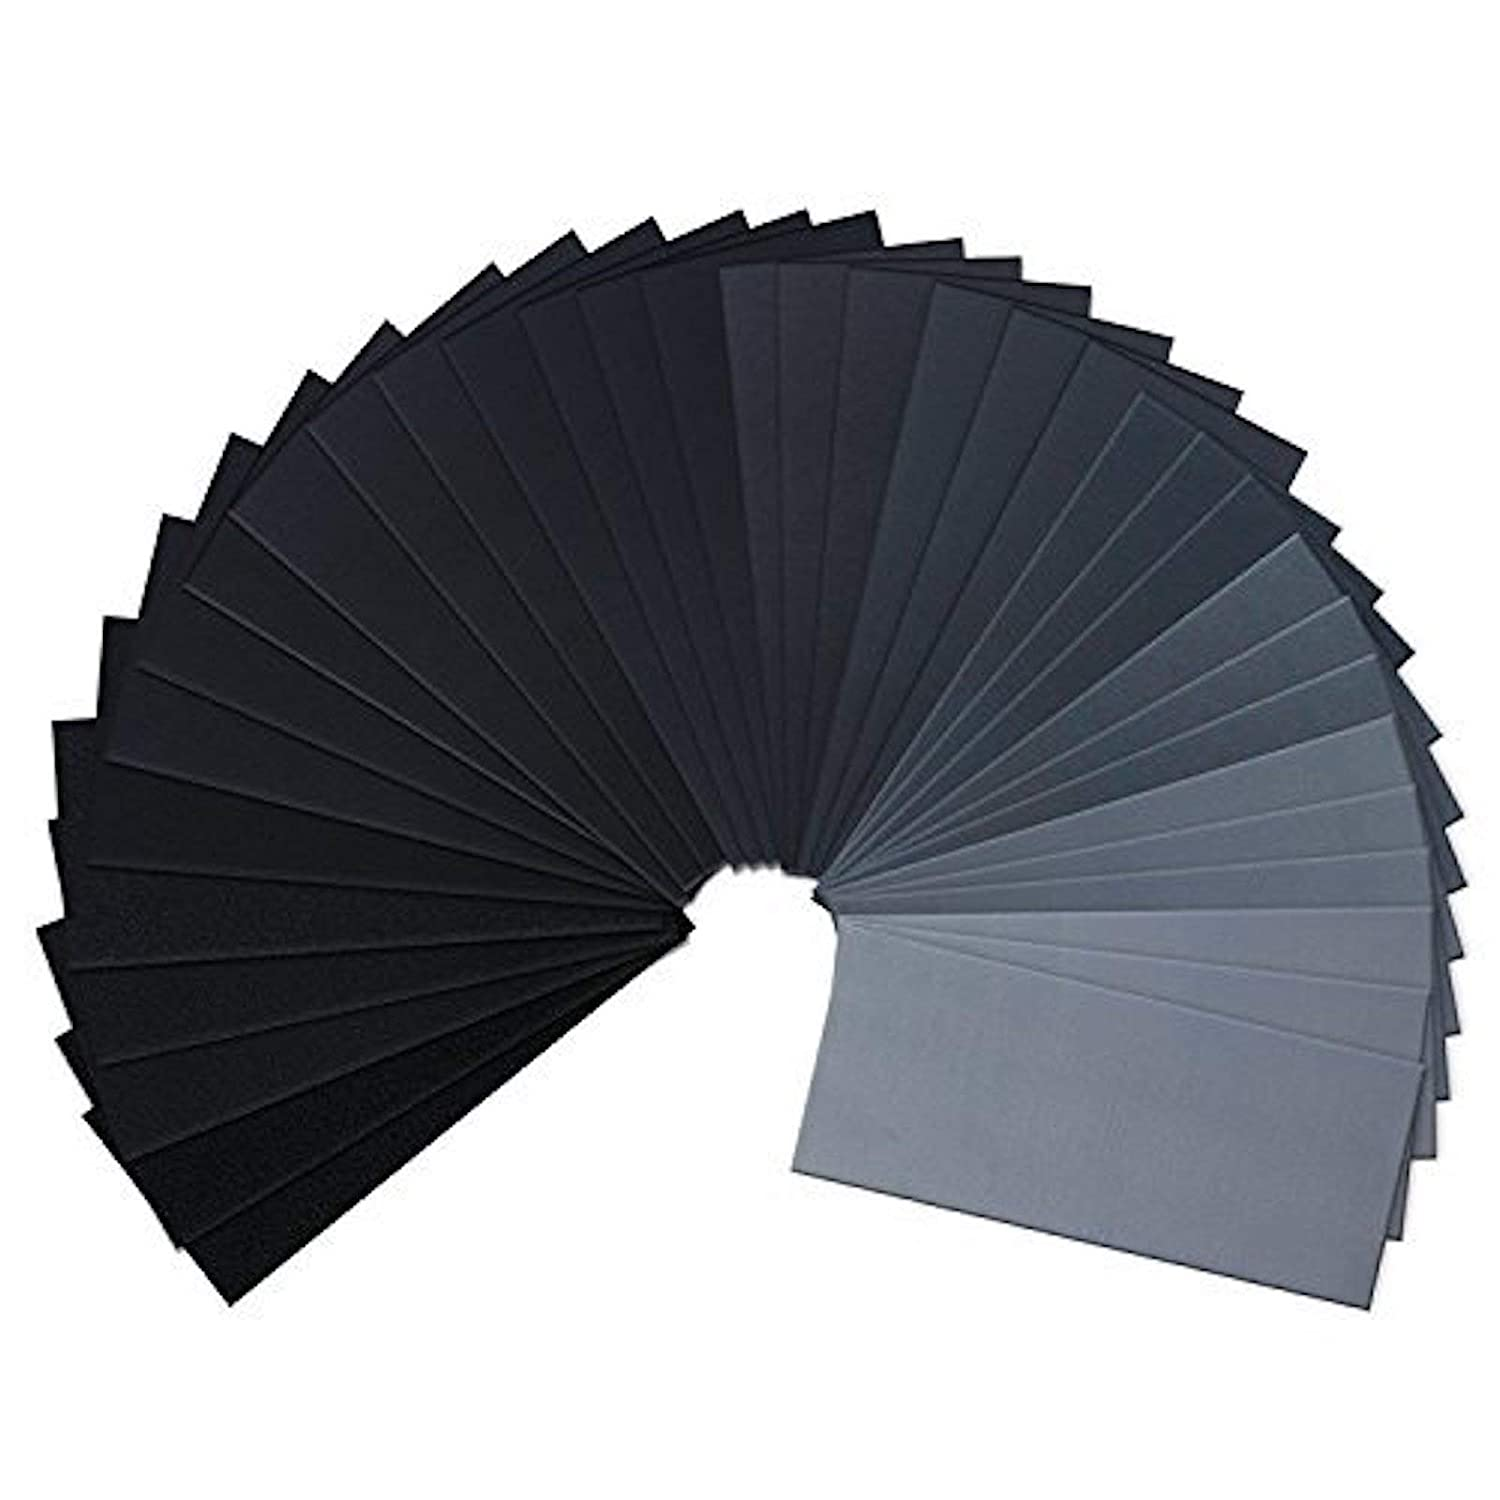 Coceca 120pcs Wet Dry Sandpaper 120 to 3000 Assorted Grit Sandpaper for Wood Furniture Finishing, Metal Sanding and Automotive Polishing,